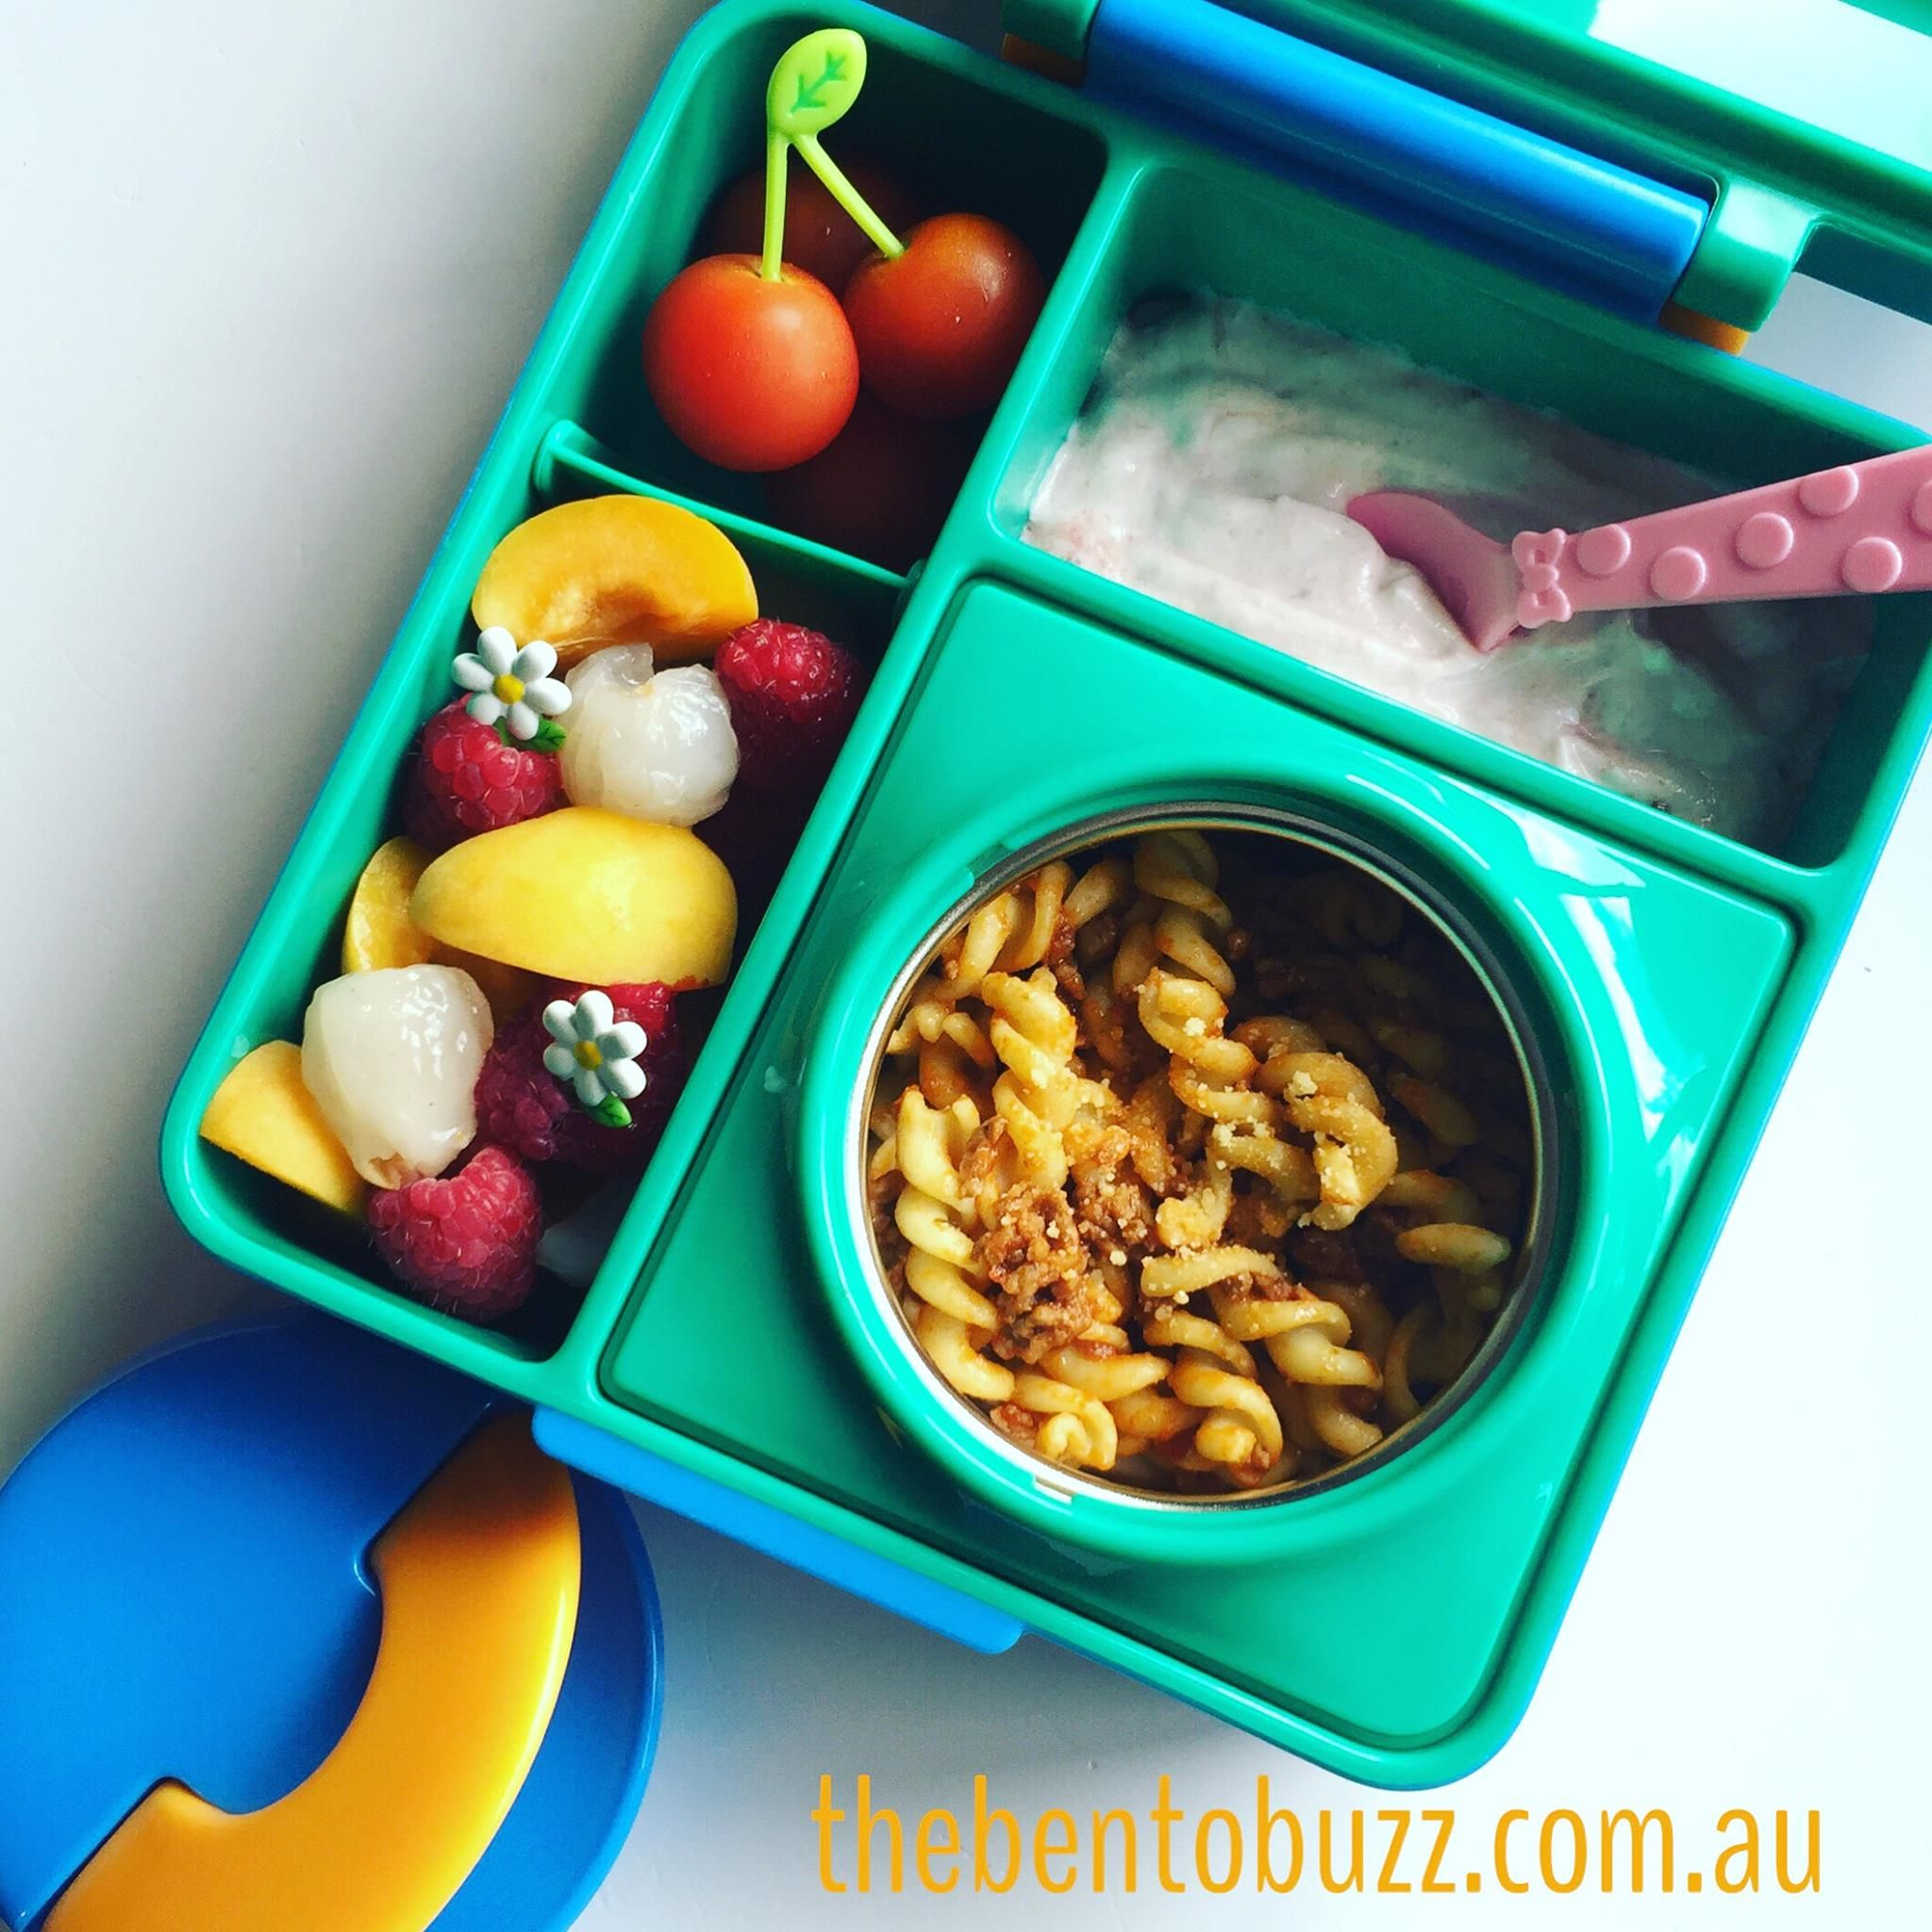 The Only Lunchbox Where You Can Pack Hot And Cold Food